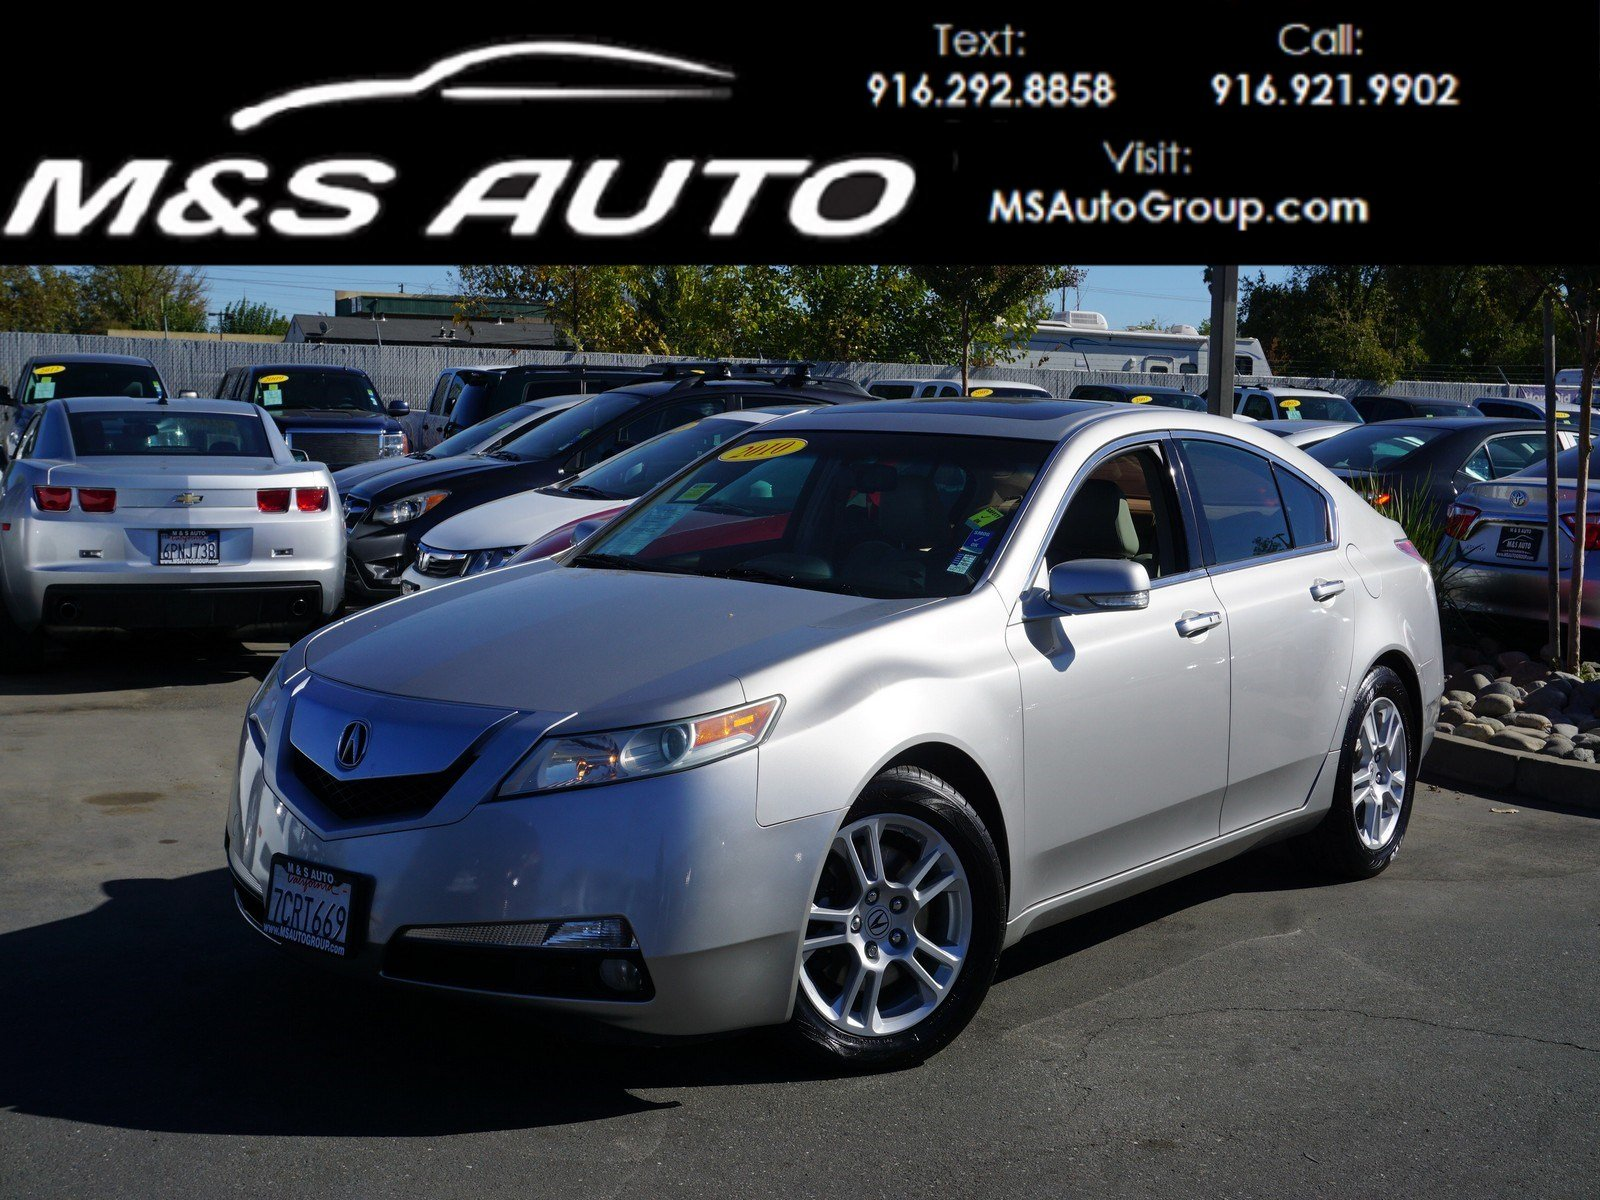 Pre Owned 2010 Acura TL 4dr Car in Sacramento A